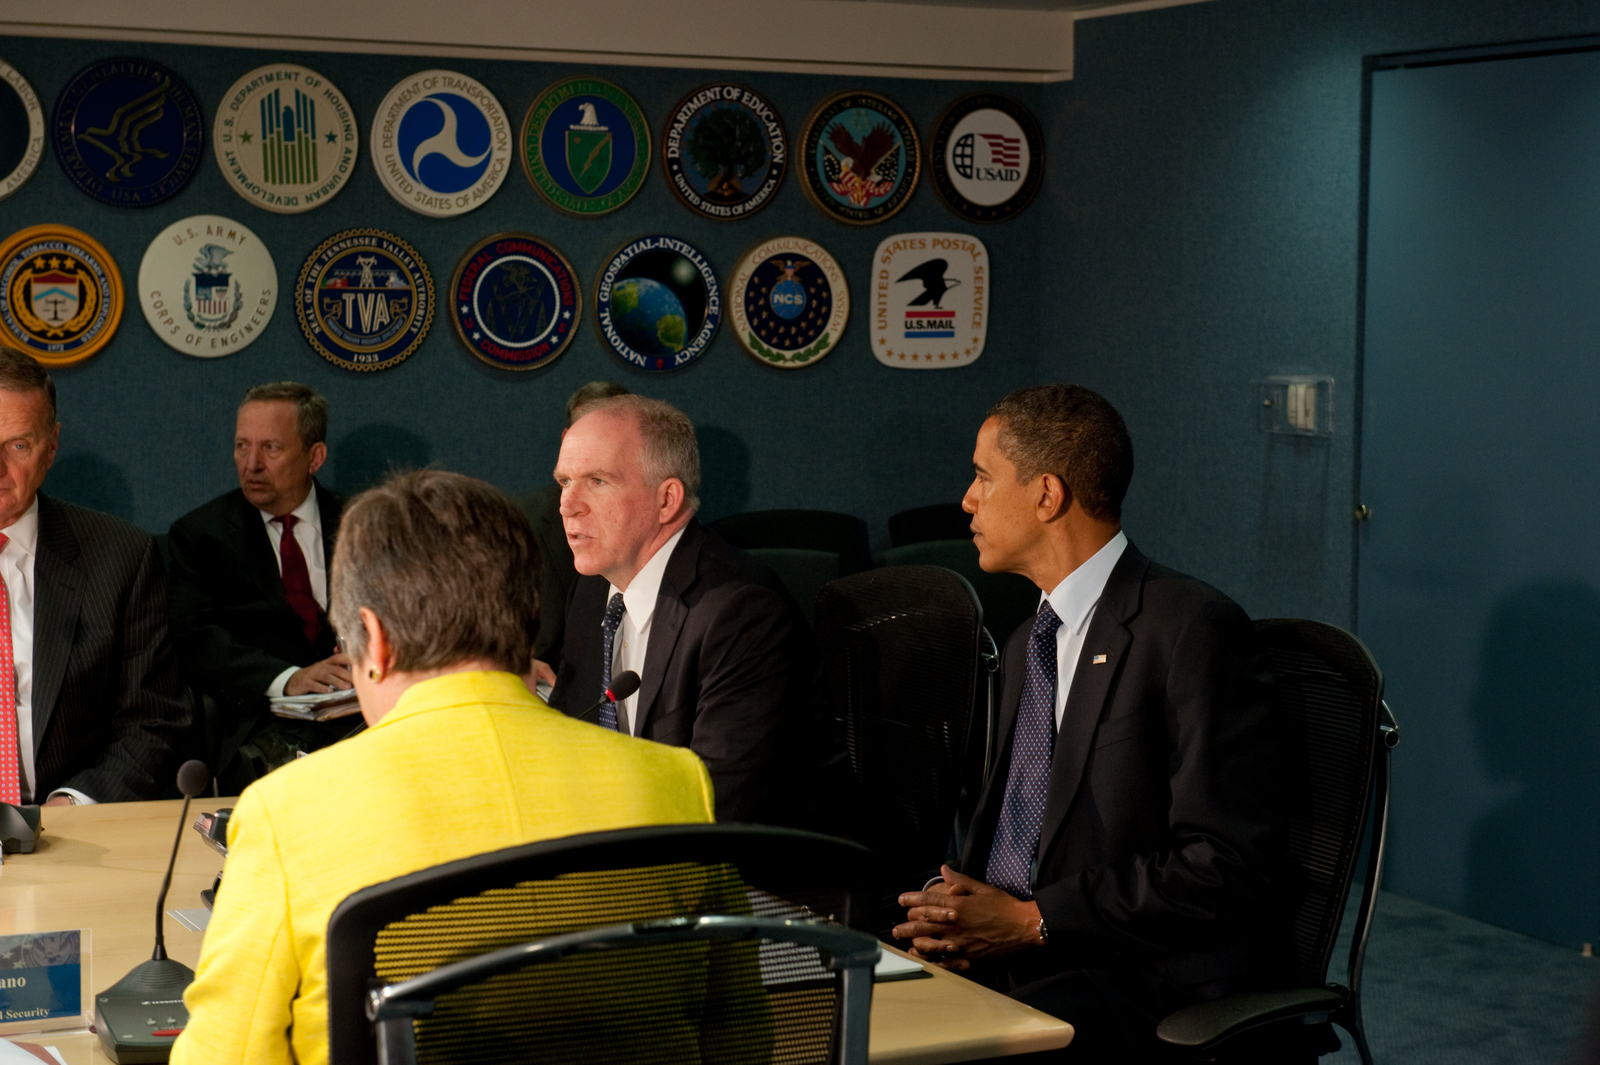 Washington, D. C. , May 29, 2009 -- President Obama at FEMA headquarters at a meeting of the Homeland Security Council, with him at the head of the table is the President of the Council, John O. Brennen.  June 1 marks the beginning of hurricane season and Mr. Obama was briefed by Federal Agencies and Departments that respond to Hurricanes.  FEMA/Bill Koplitz